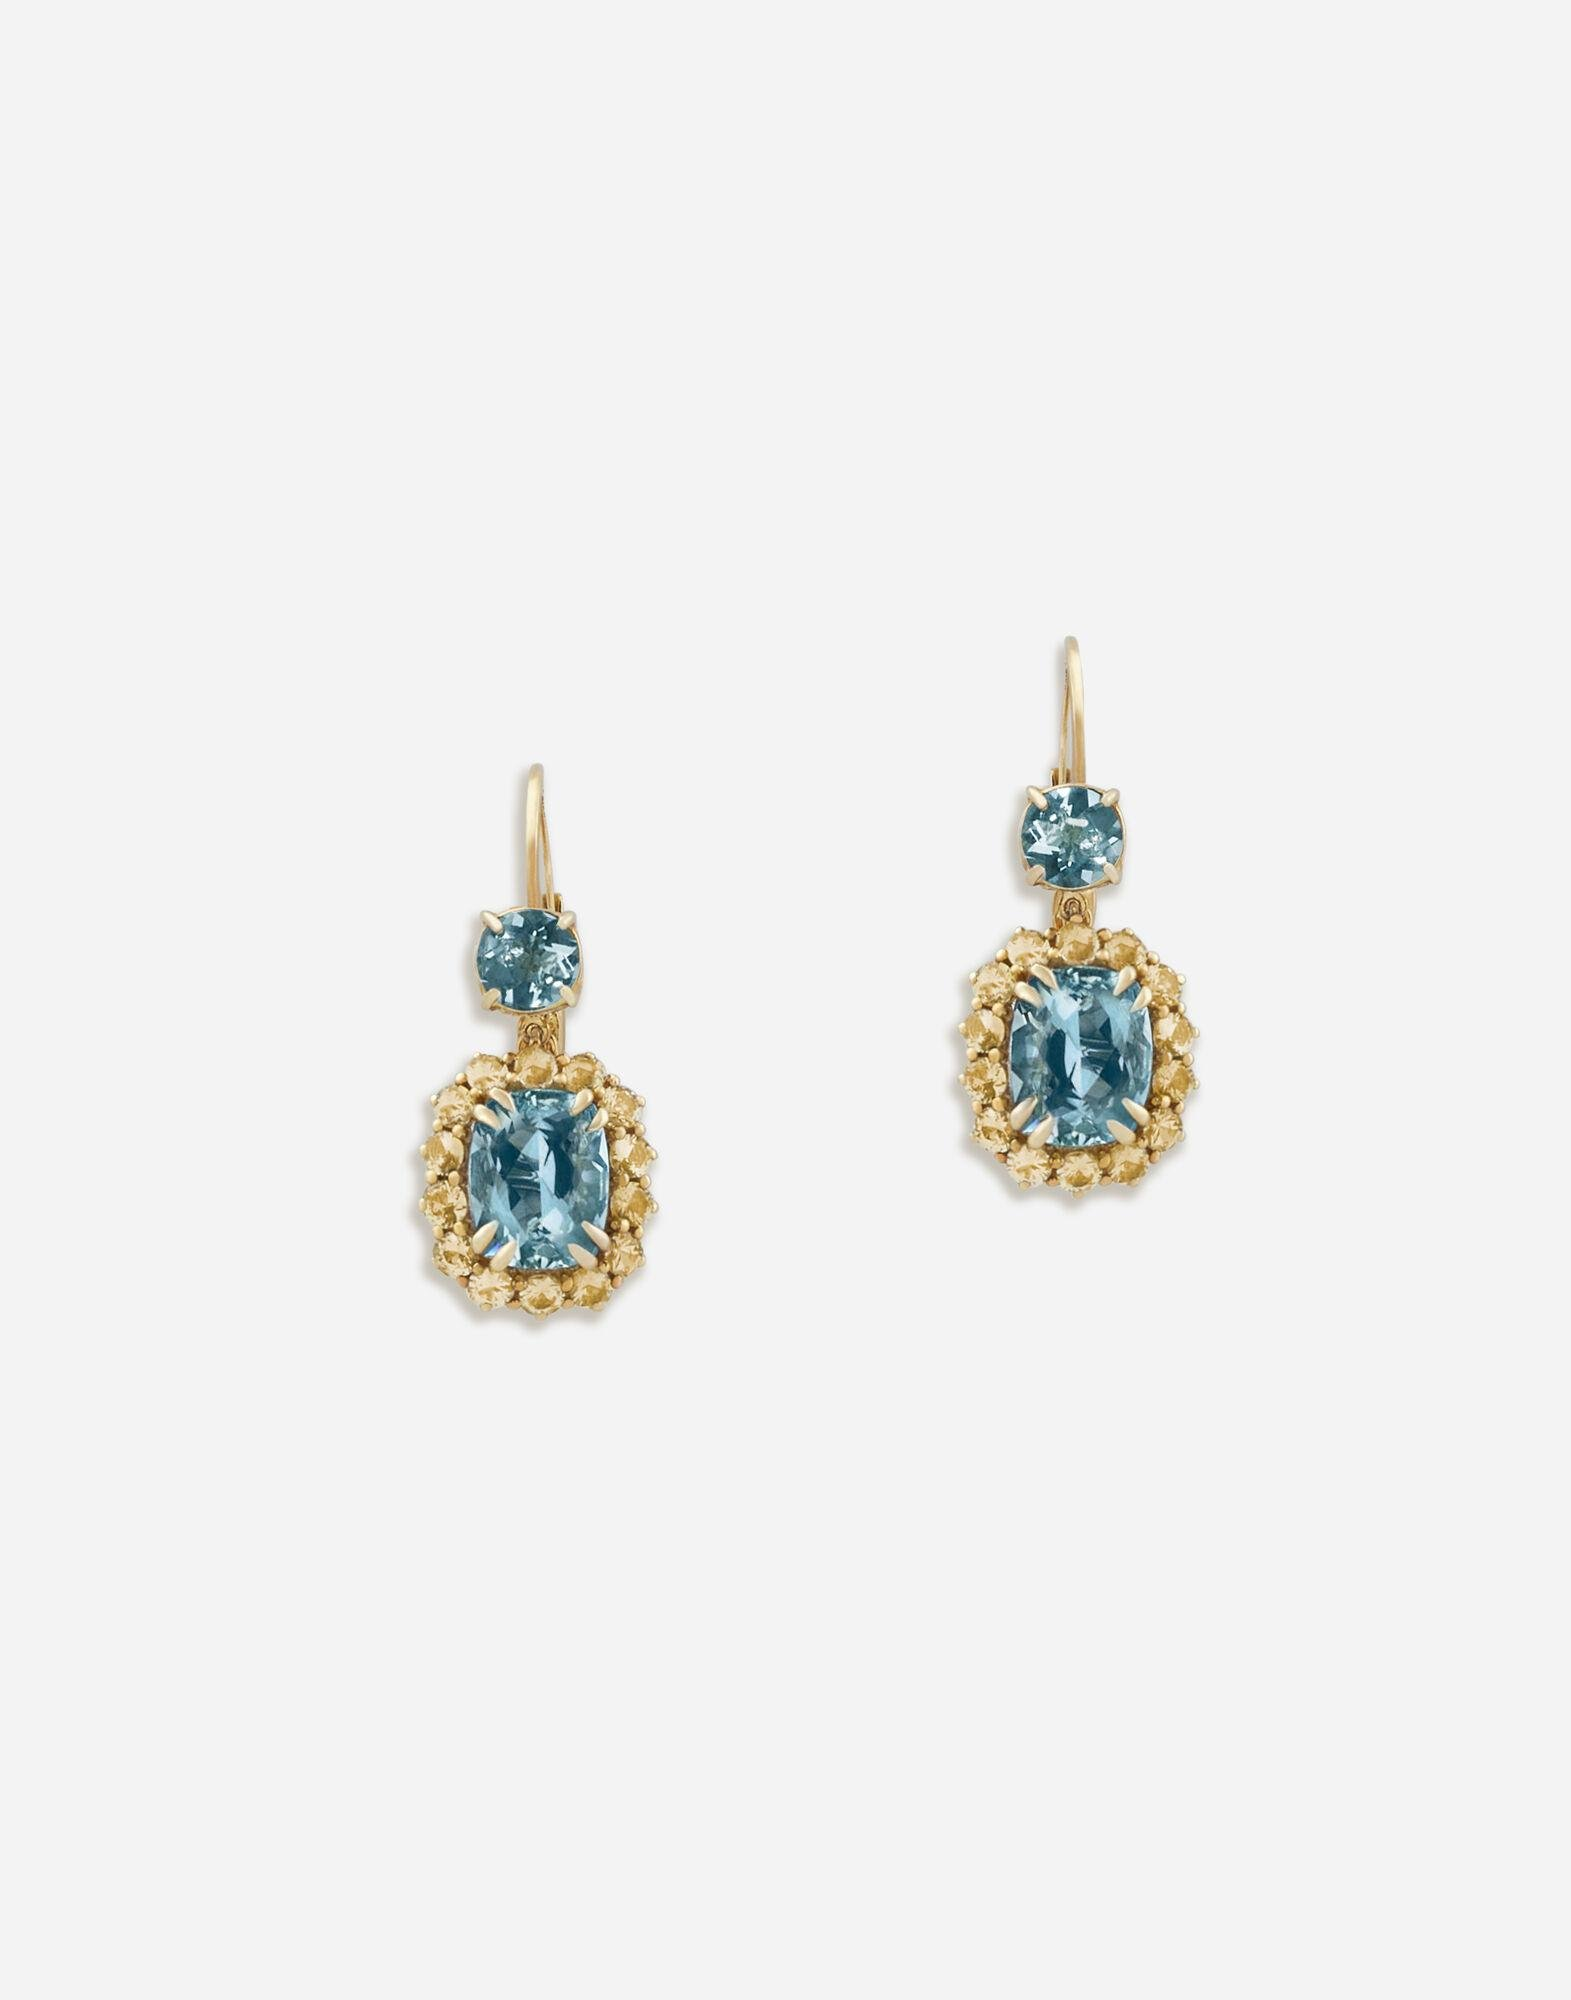 Herritage earrings in yellow gold with aquamarines and yellow sapphires